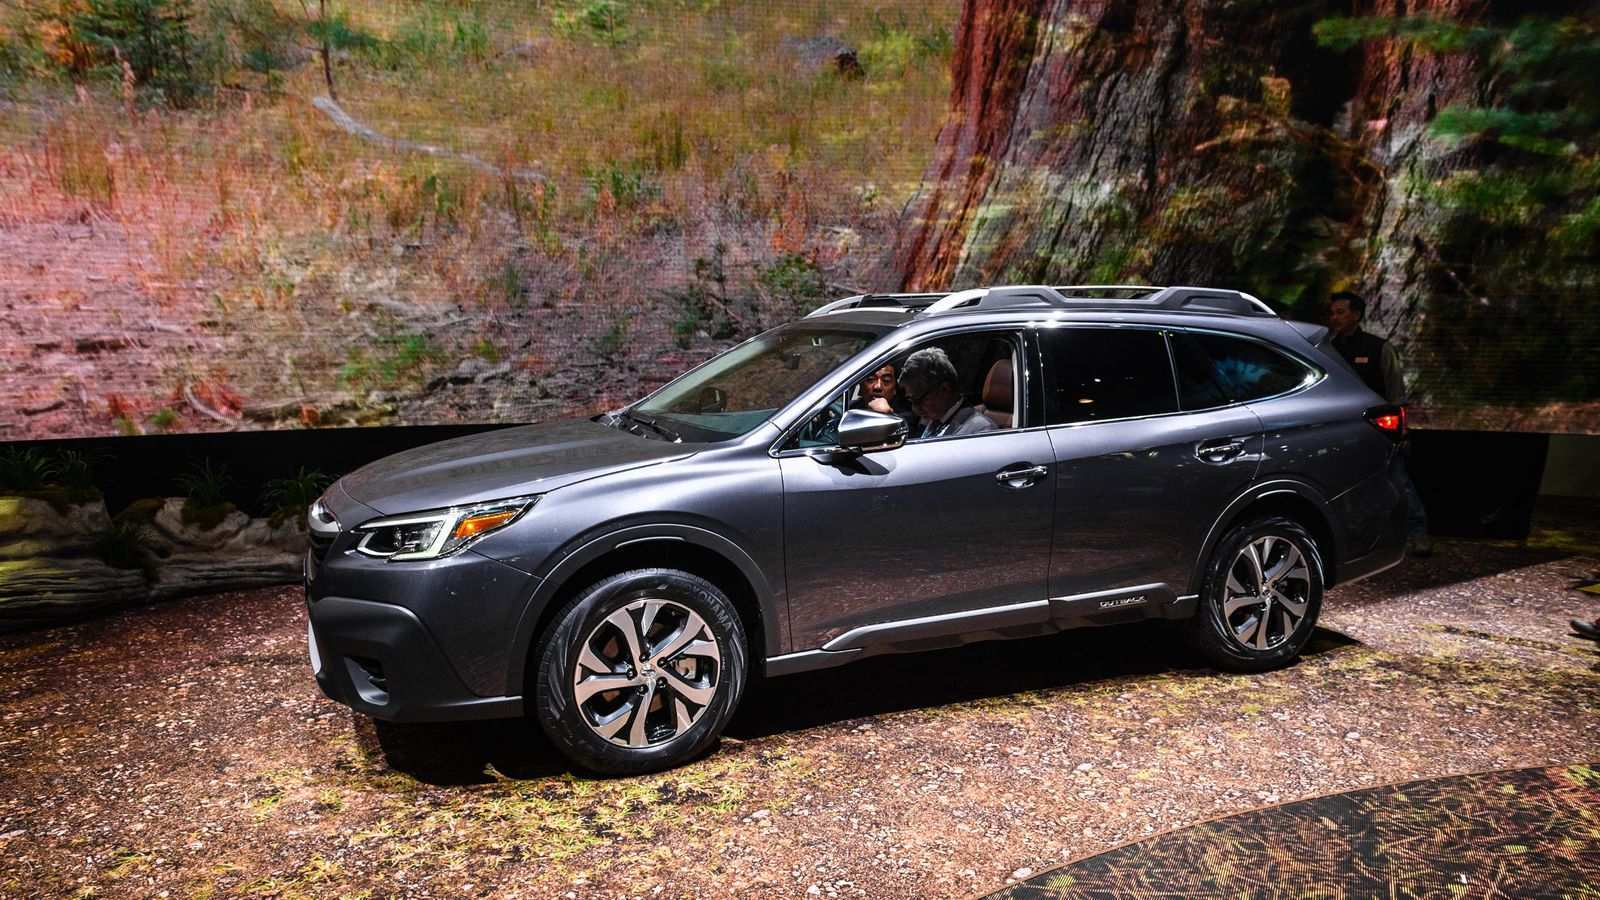 49 The Best Subaru Outback 2020 New York First Drive